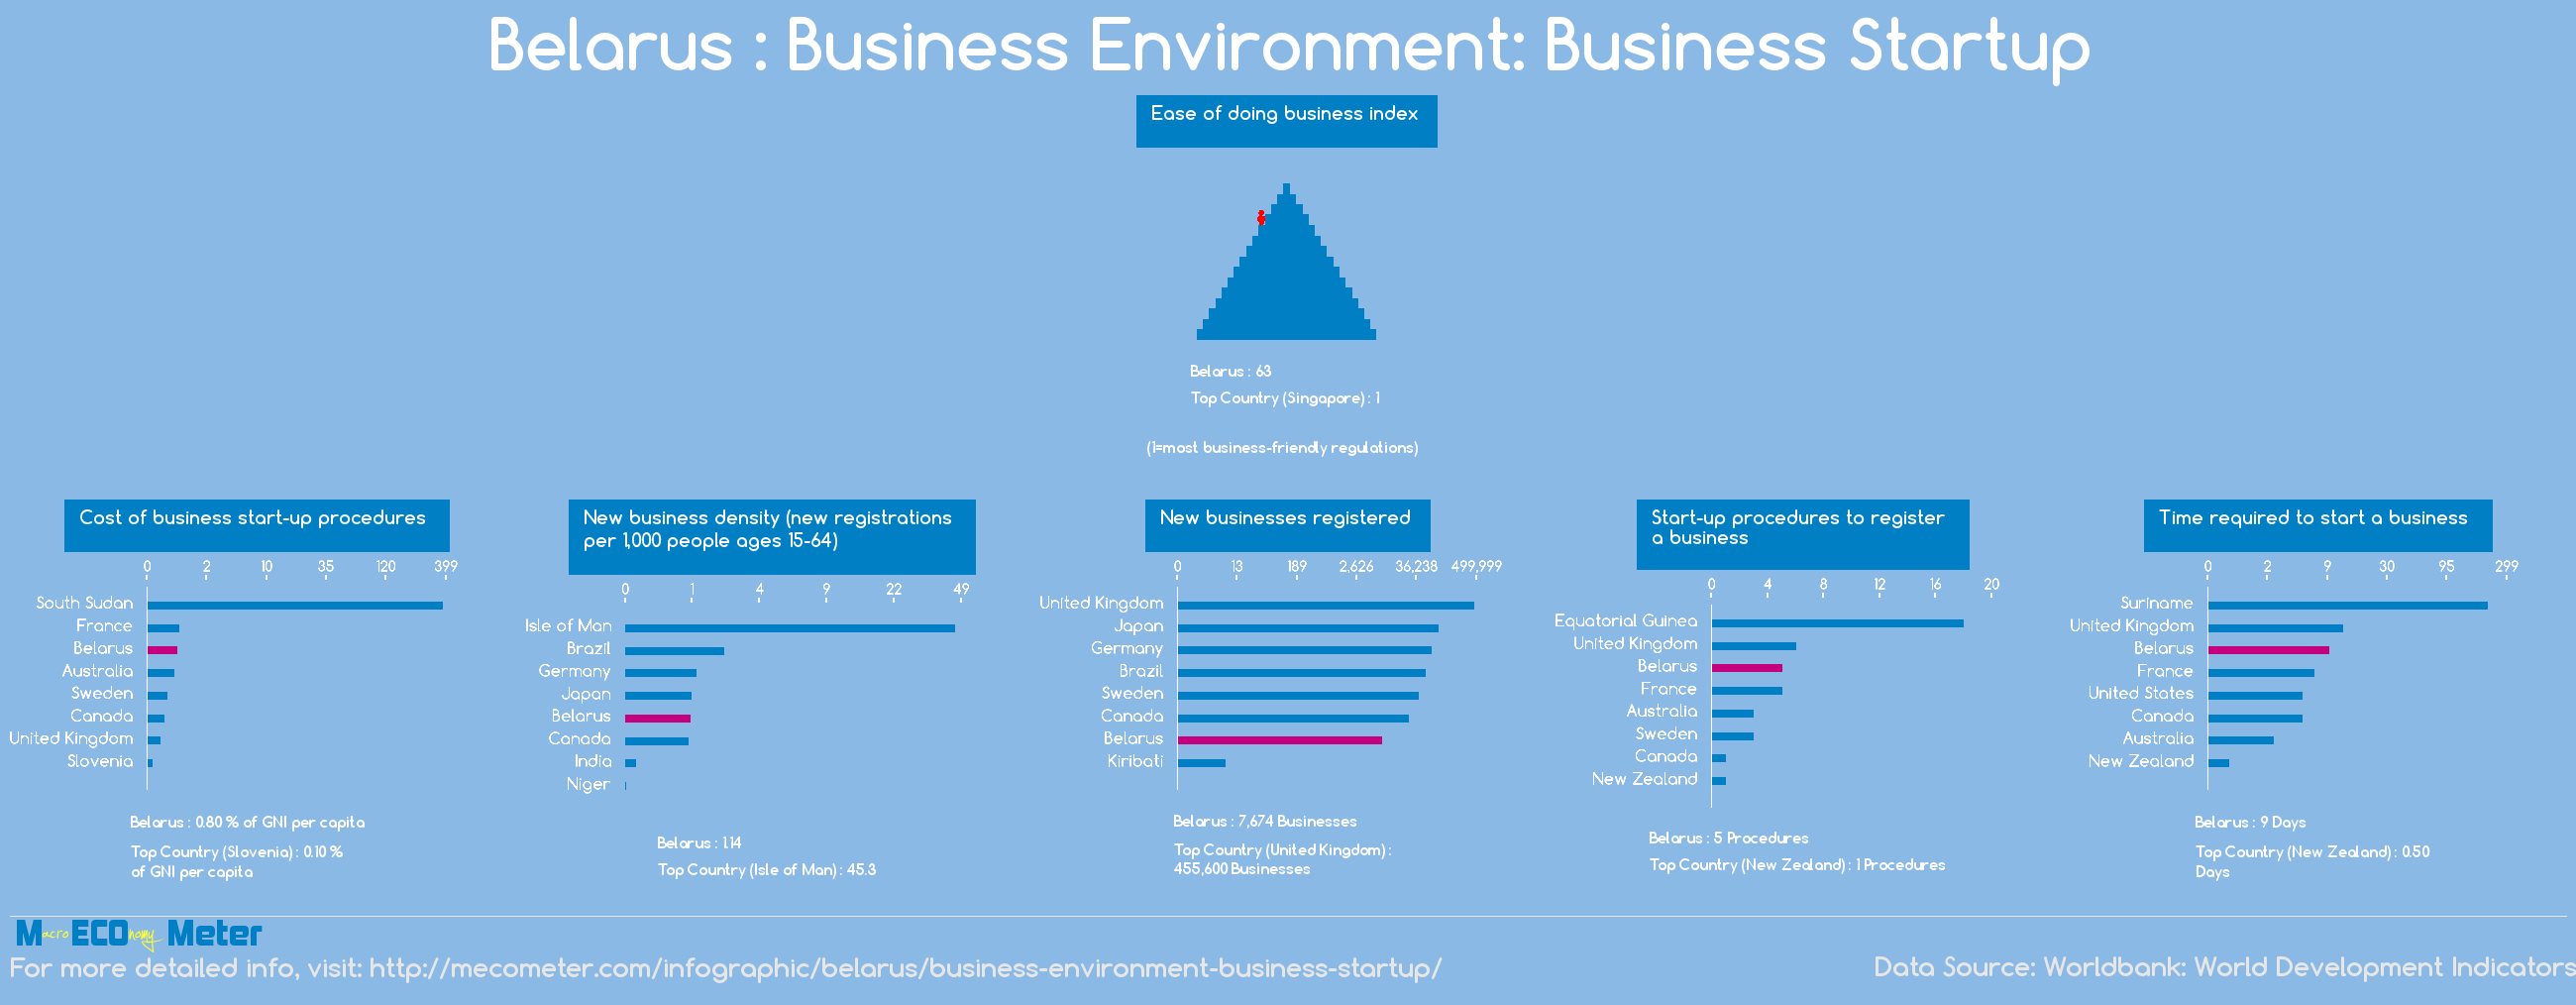 Belarus : Business Environment: Business Startup